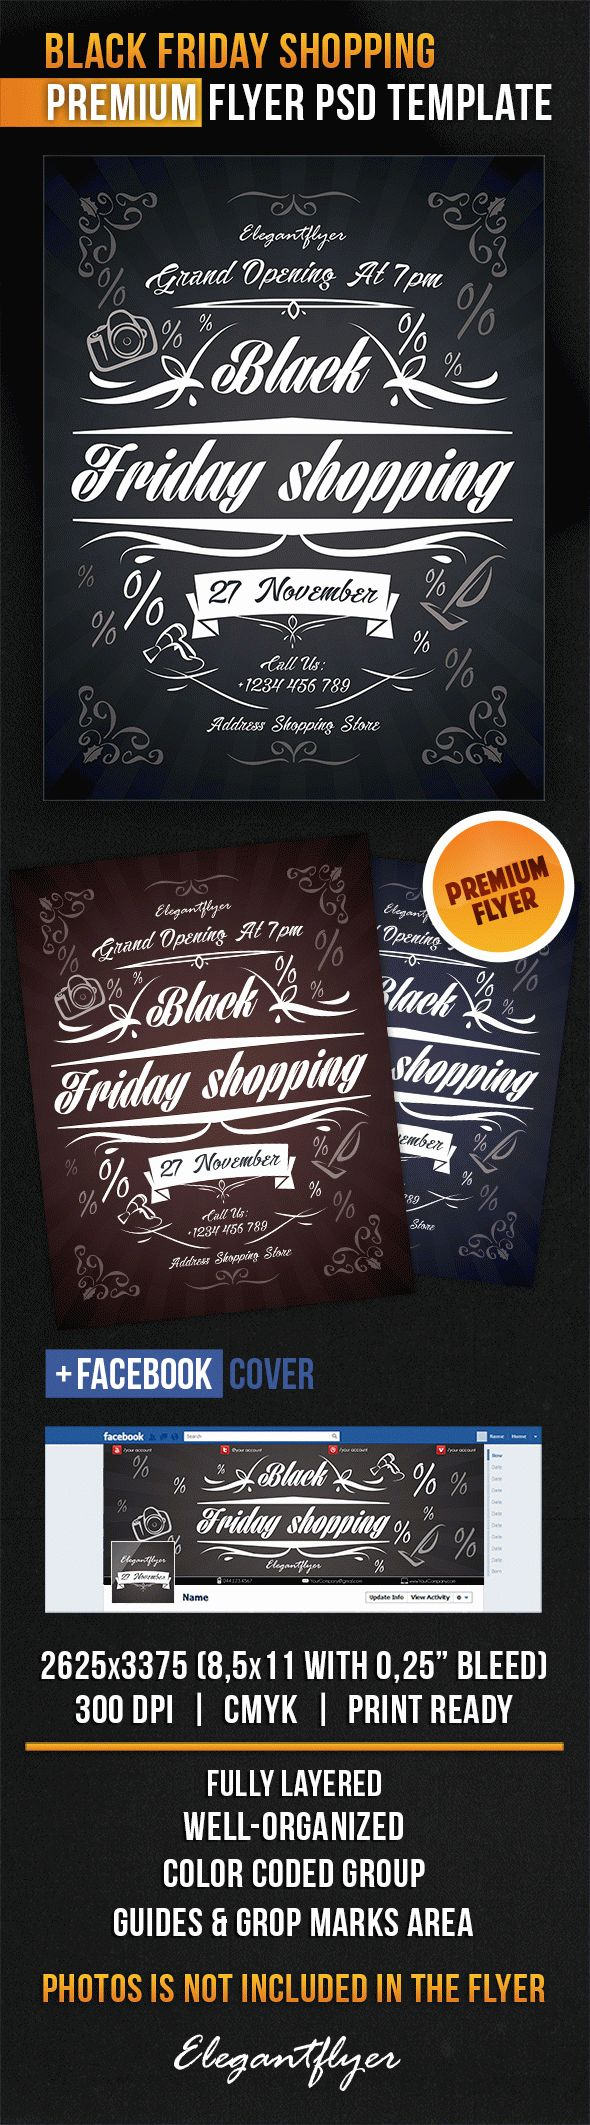 Black Friday Shopping – Flyer PSD Template